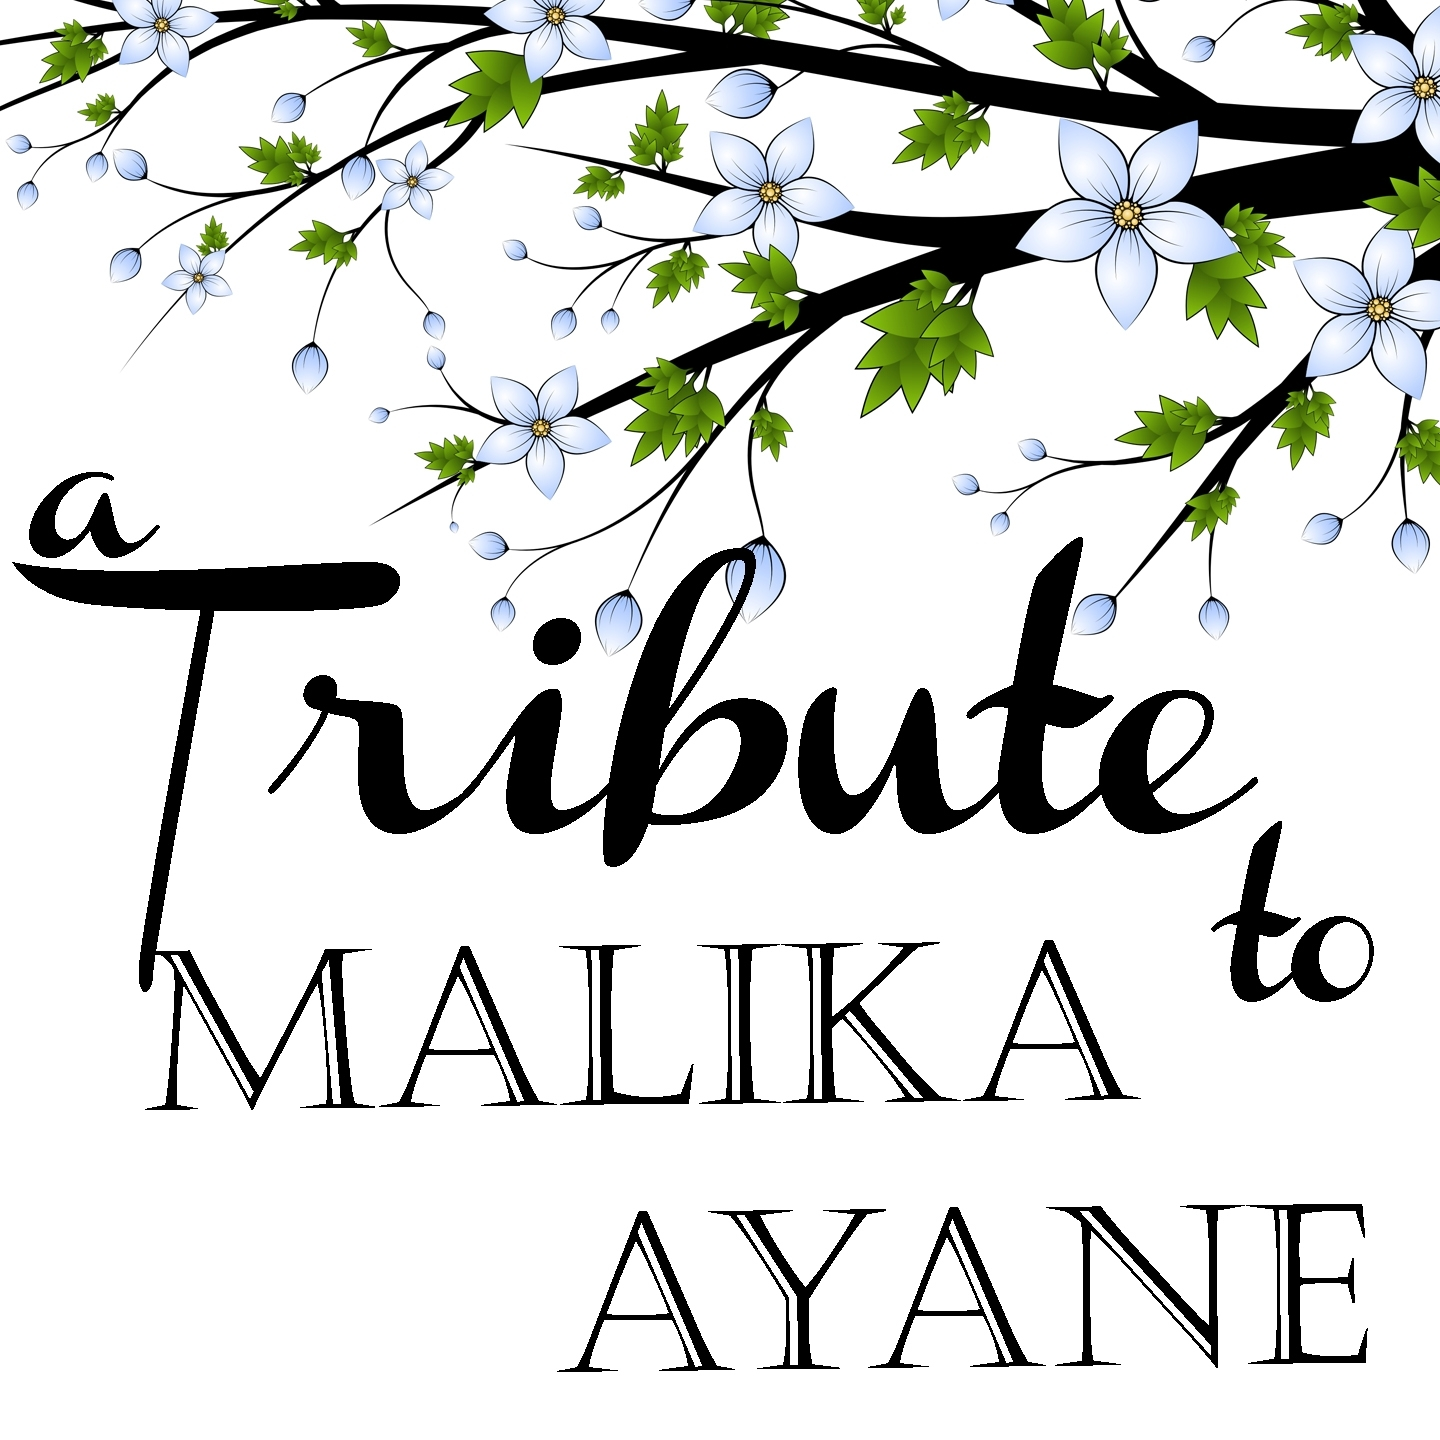 A Tribute to Malika Ayane